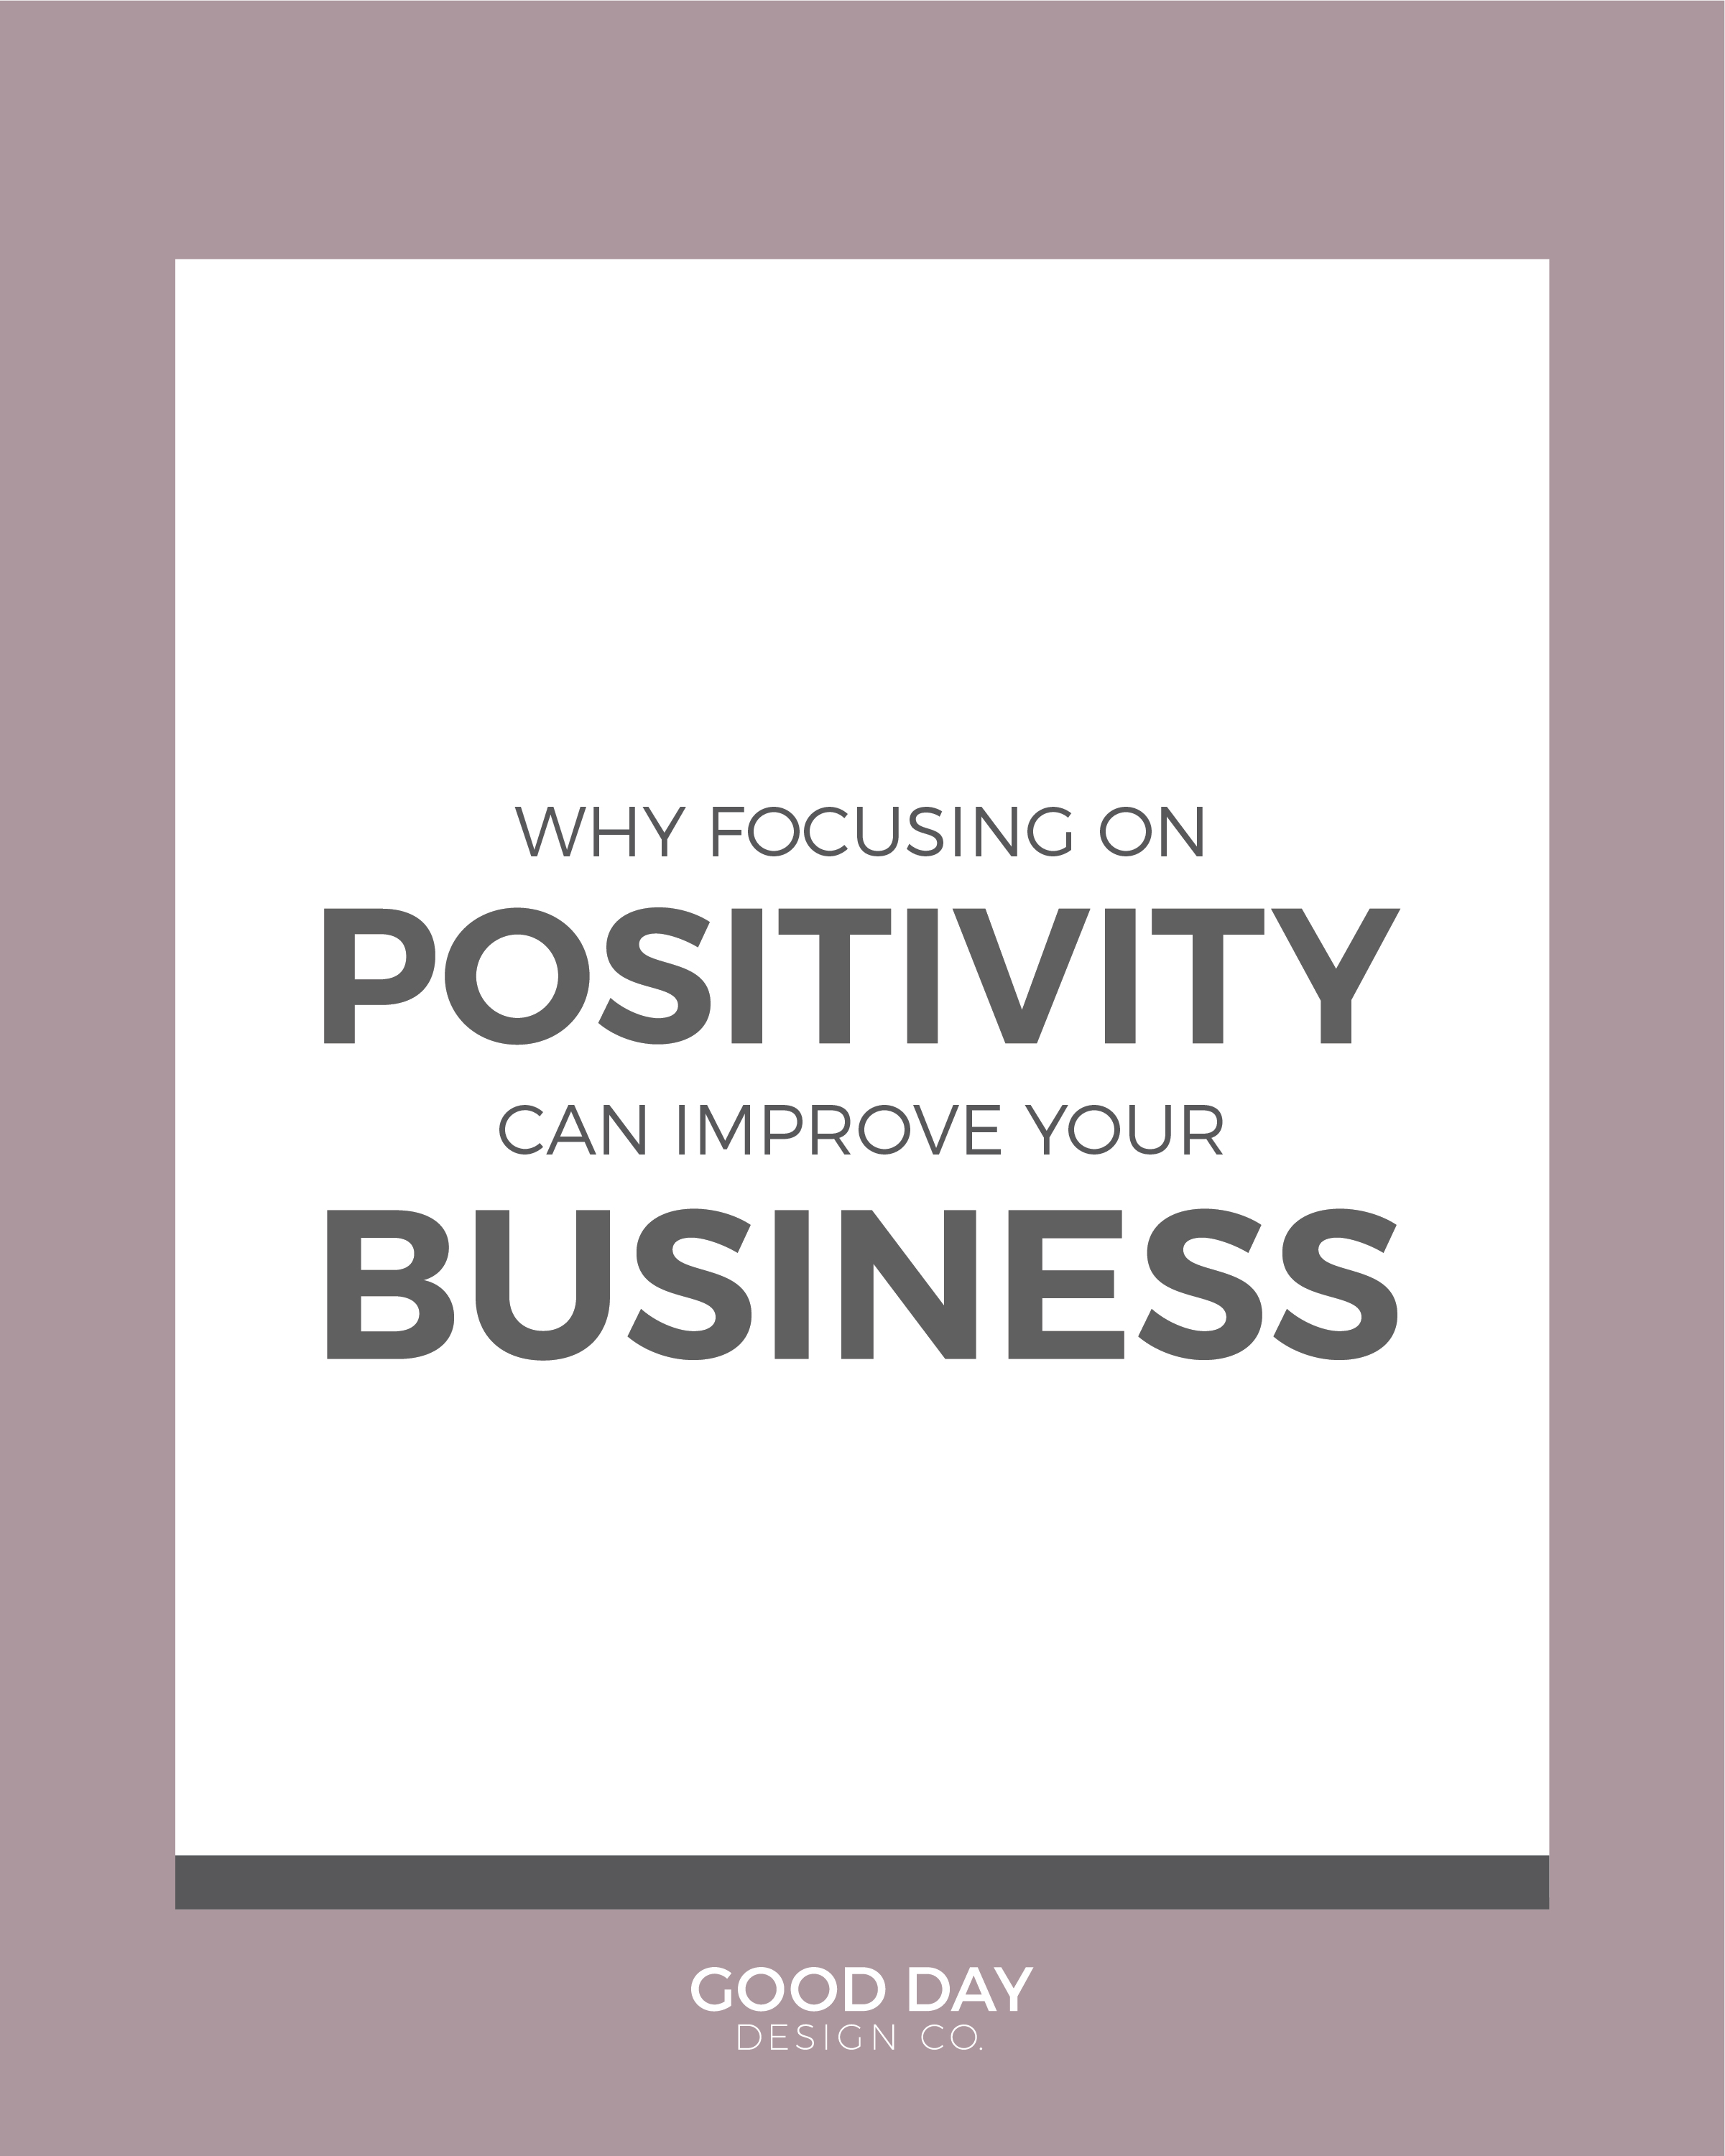 Positivity-in-Business-Good-Day-Design-Co-Blog